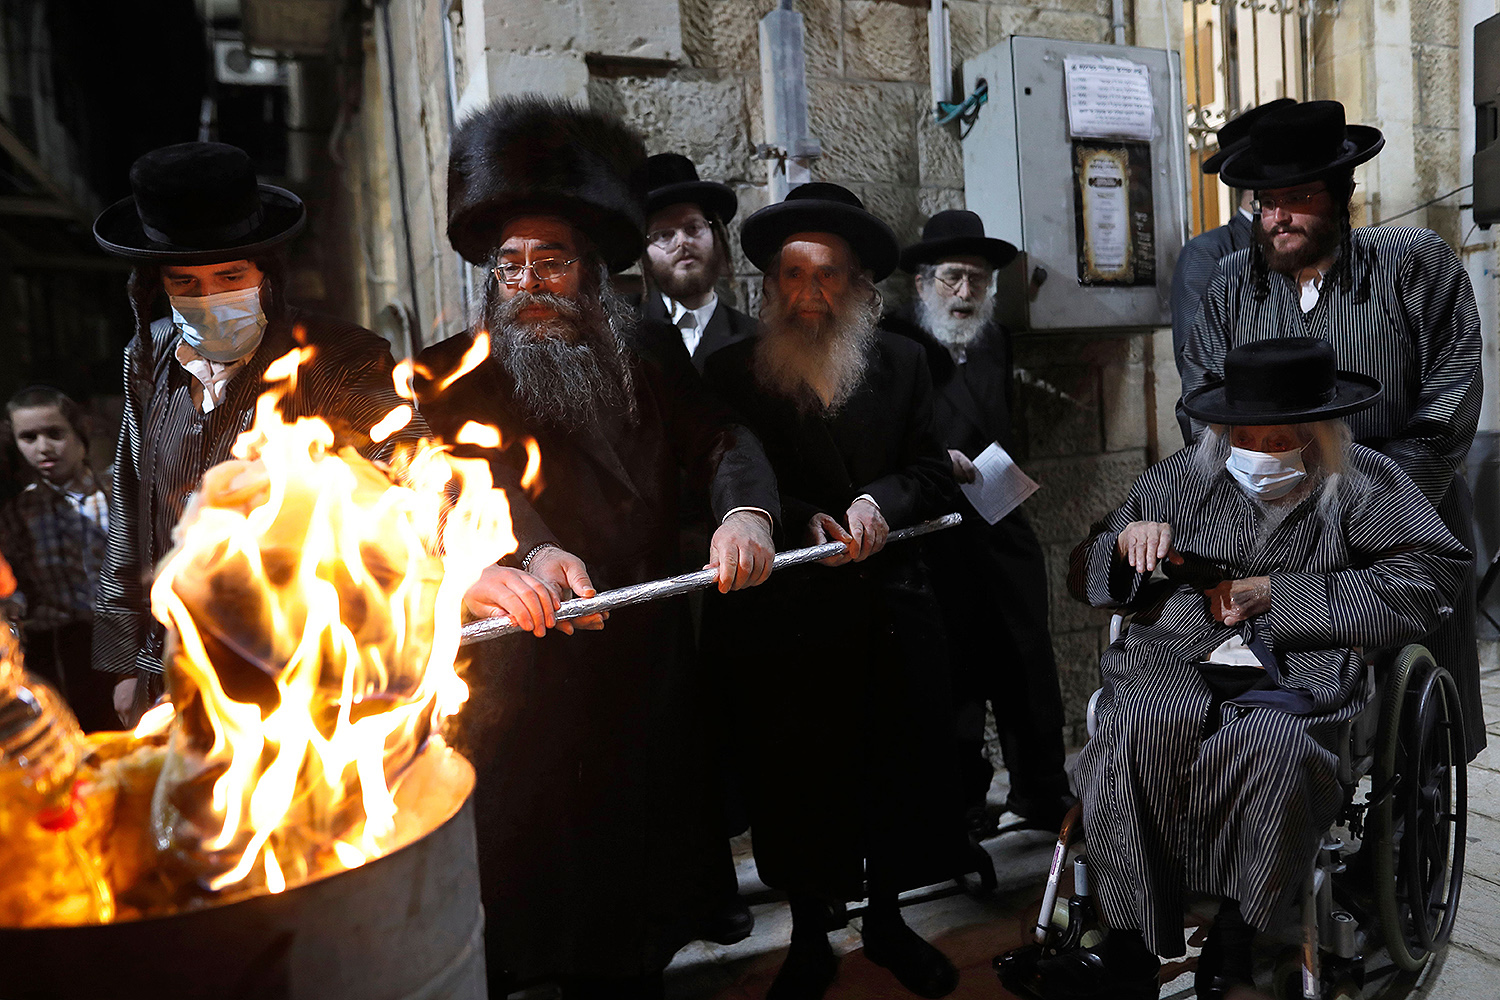 Ultra-Orthodox Jews light a bonfire in Jerusalem's Mea Shearim neighborhood to celebrate the Lag BaOmer holiday May 11 amid the Israeli health ministry's order to maintain social distancing and cancel all celebrations. MENAHEM KAHANA/AFP via Getty Images